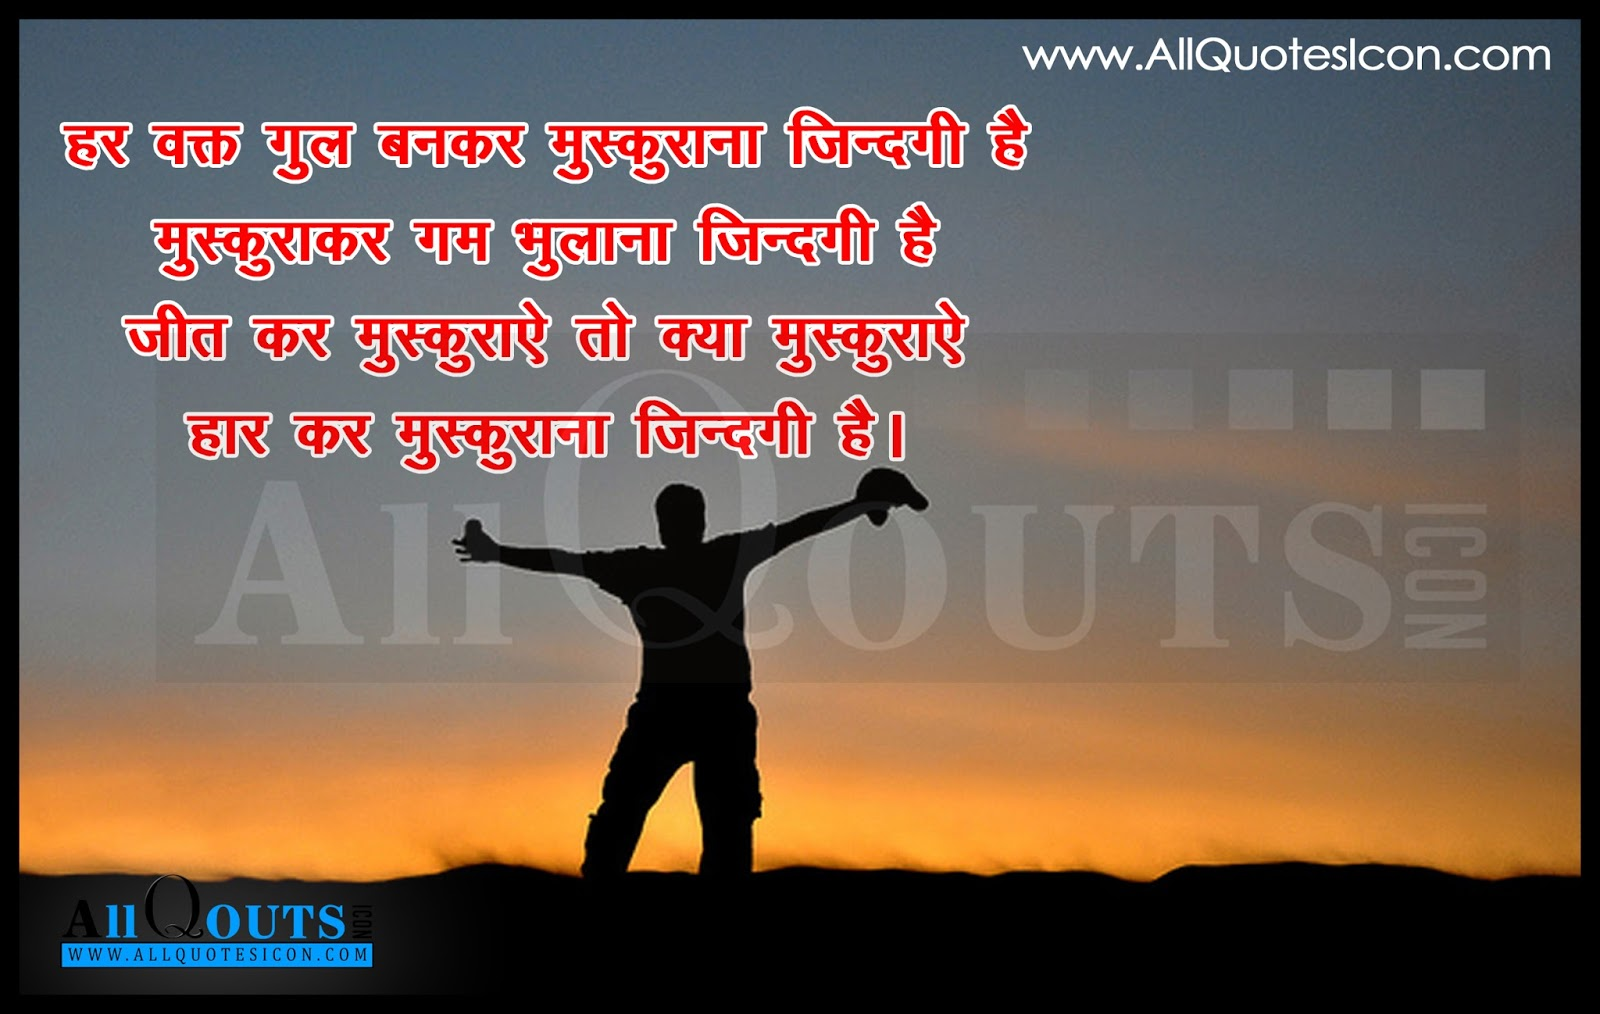 Pictures Of Best Quotes Ever About Life In Hindi Kidskunstinfo